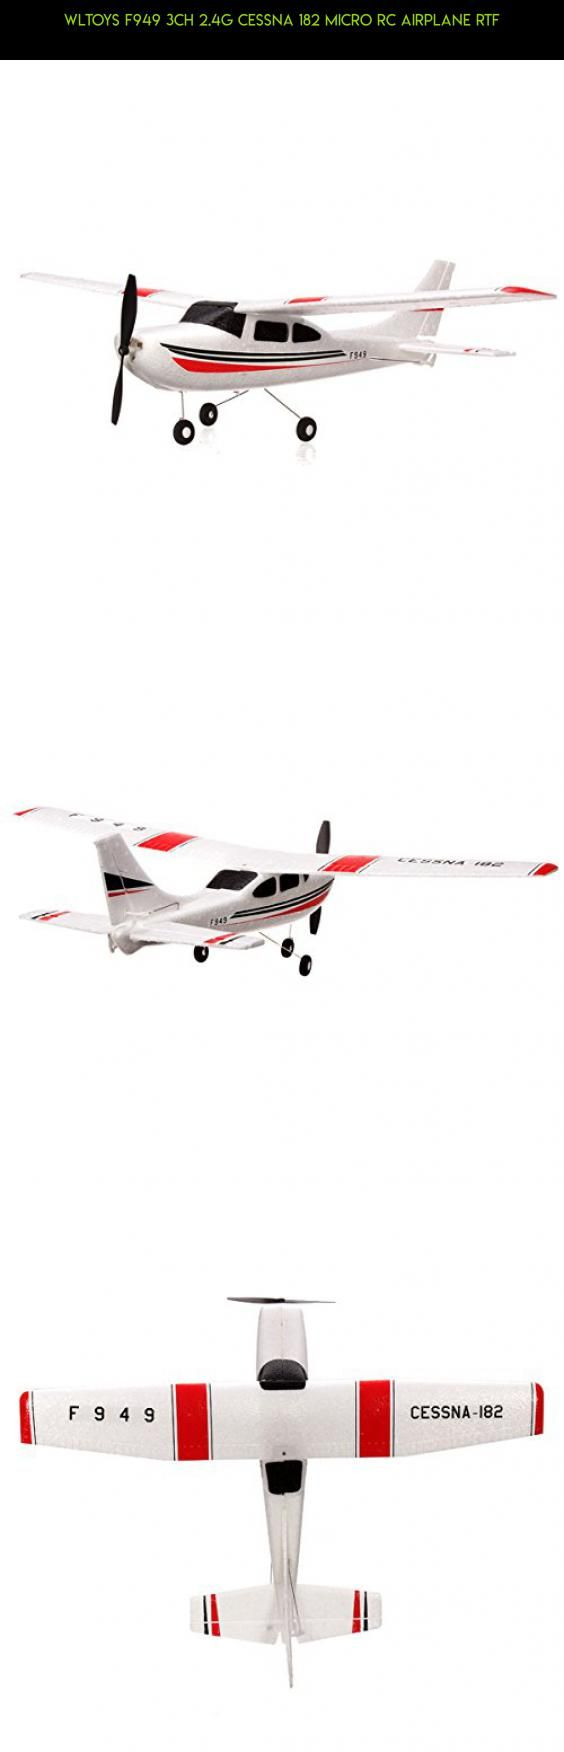 WLtoys F949 3CH 2.4G Cessna 182 Micro RC Airplane RTF #technology #drone #shopping #kit #fpv #plans #camera #wltoys #products #gadgets #parts #3ch #tech #racing